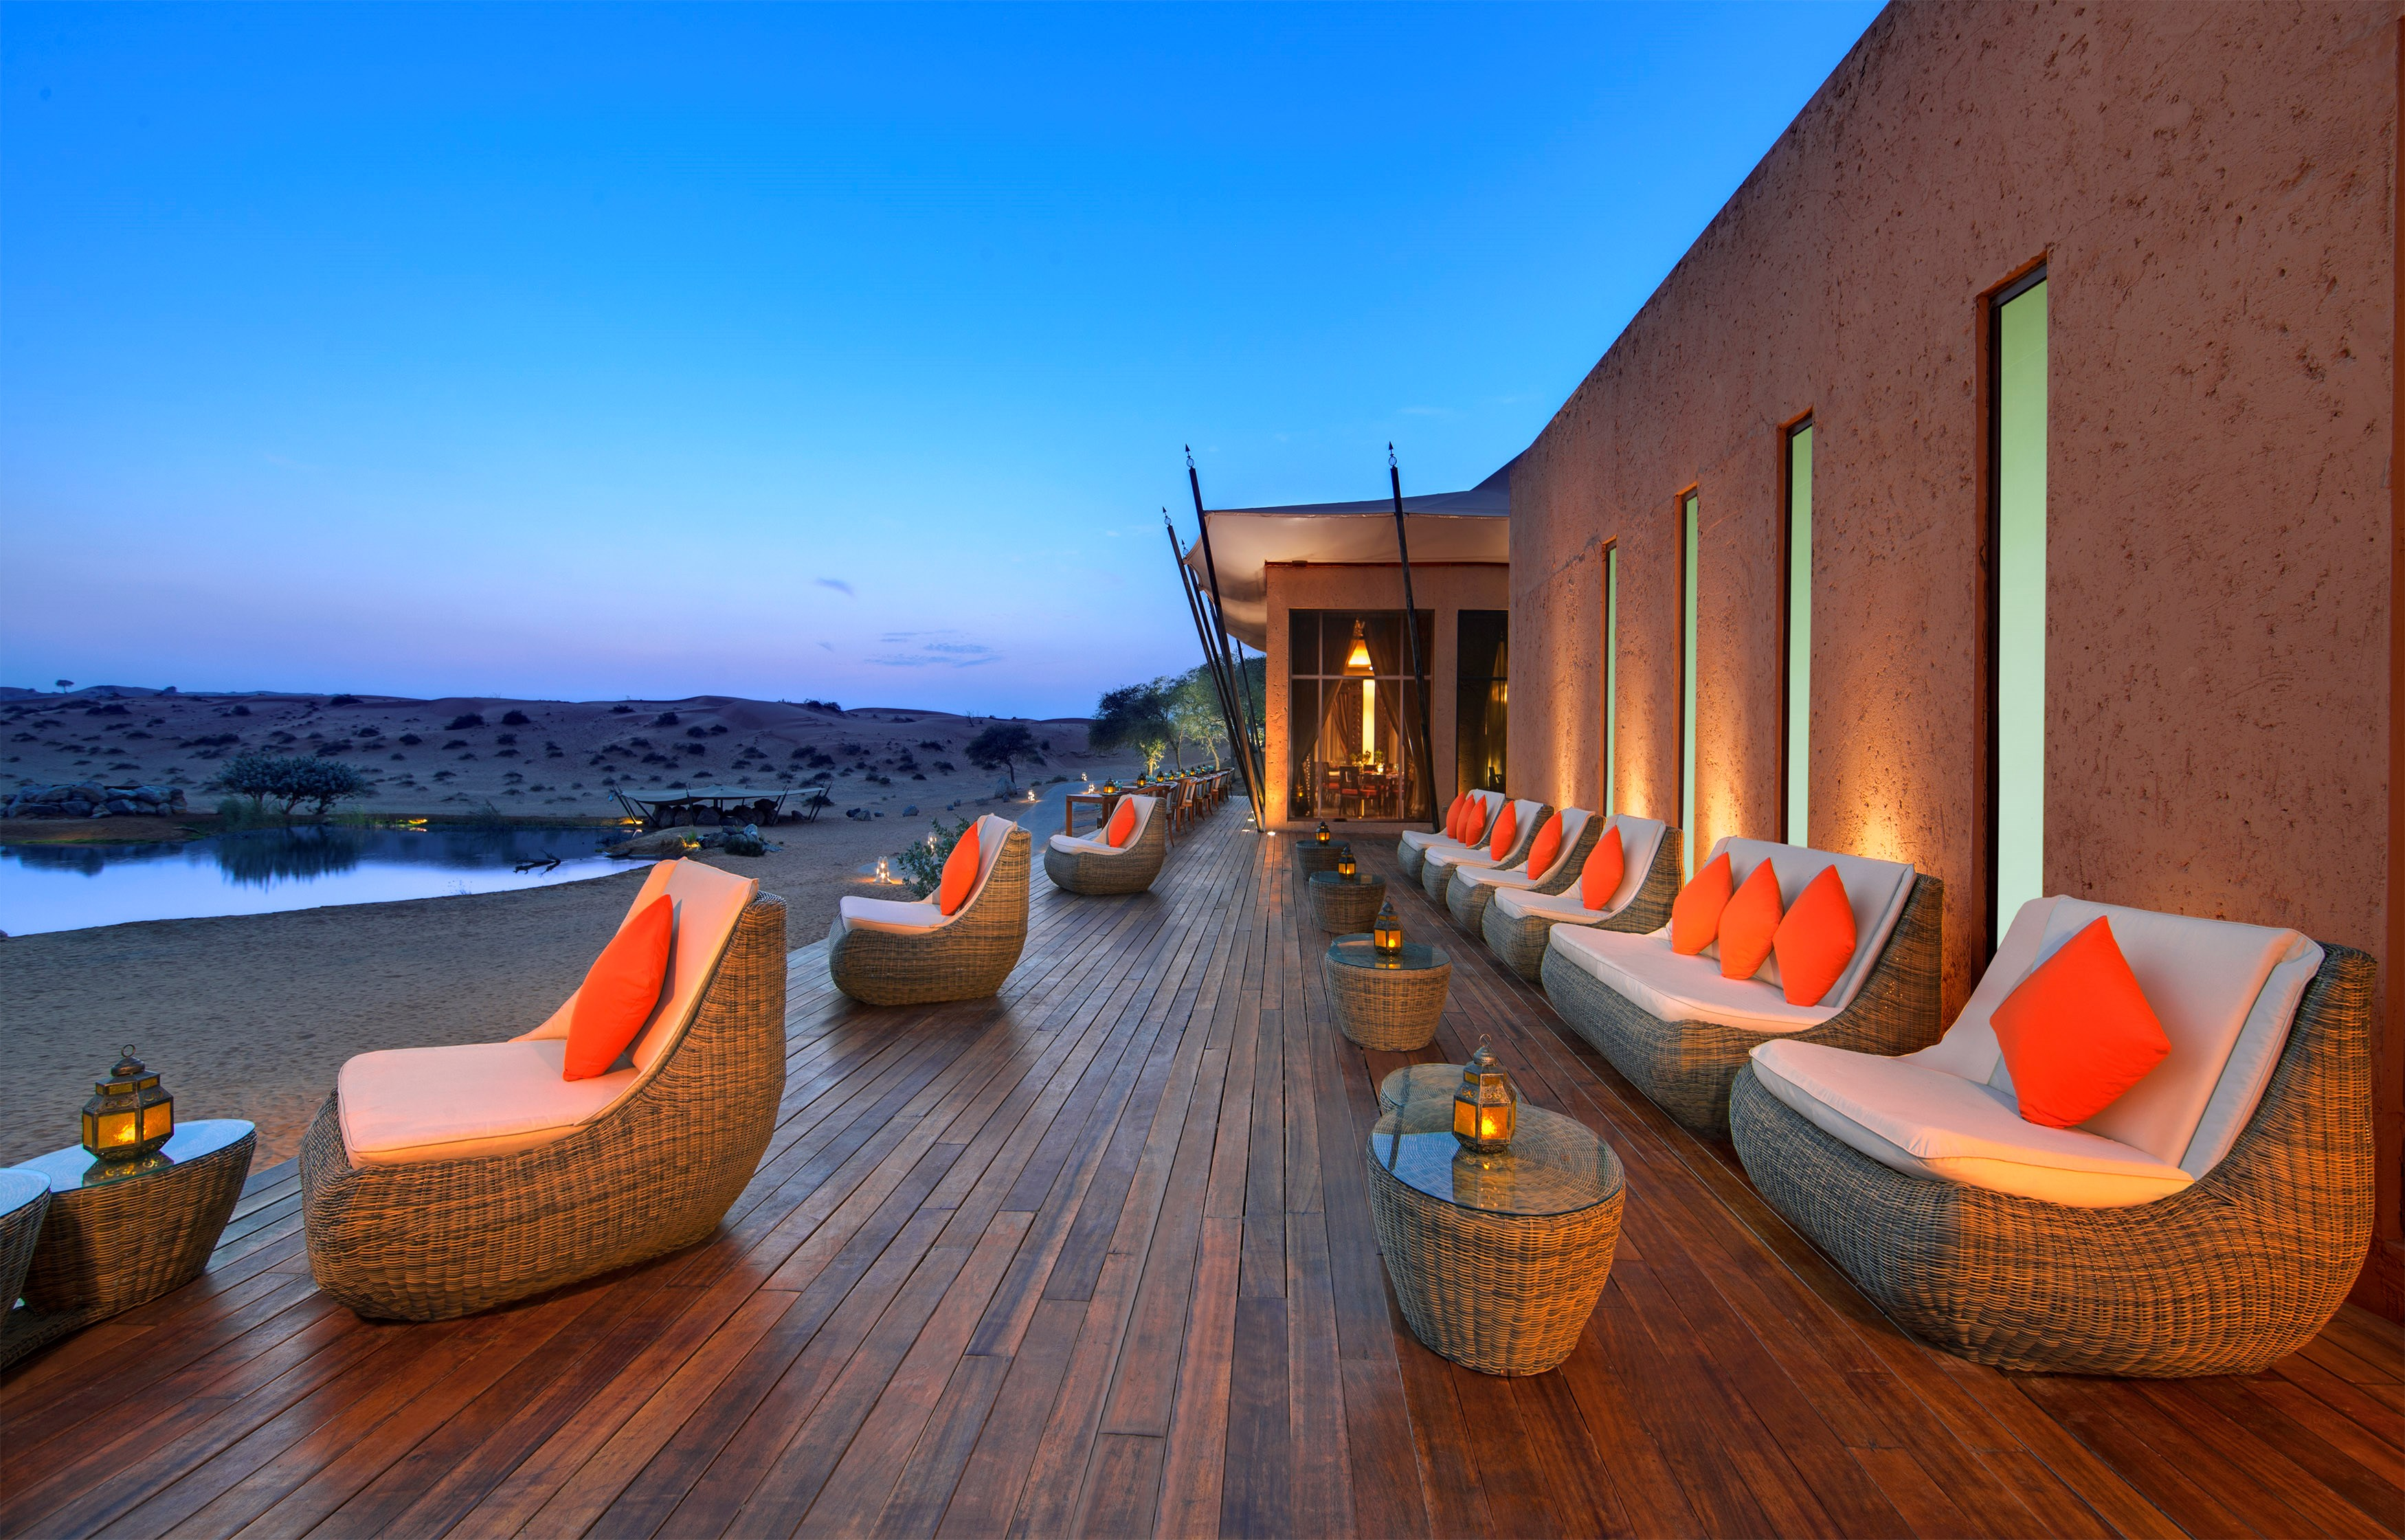 The Ritz-Carlton Al Wadi Desert